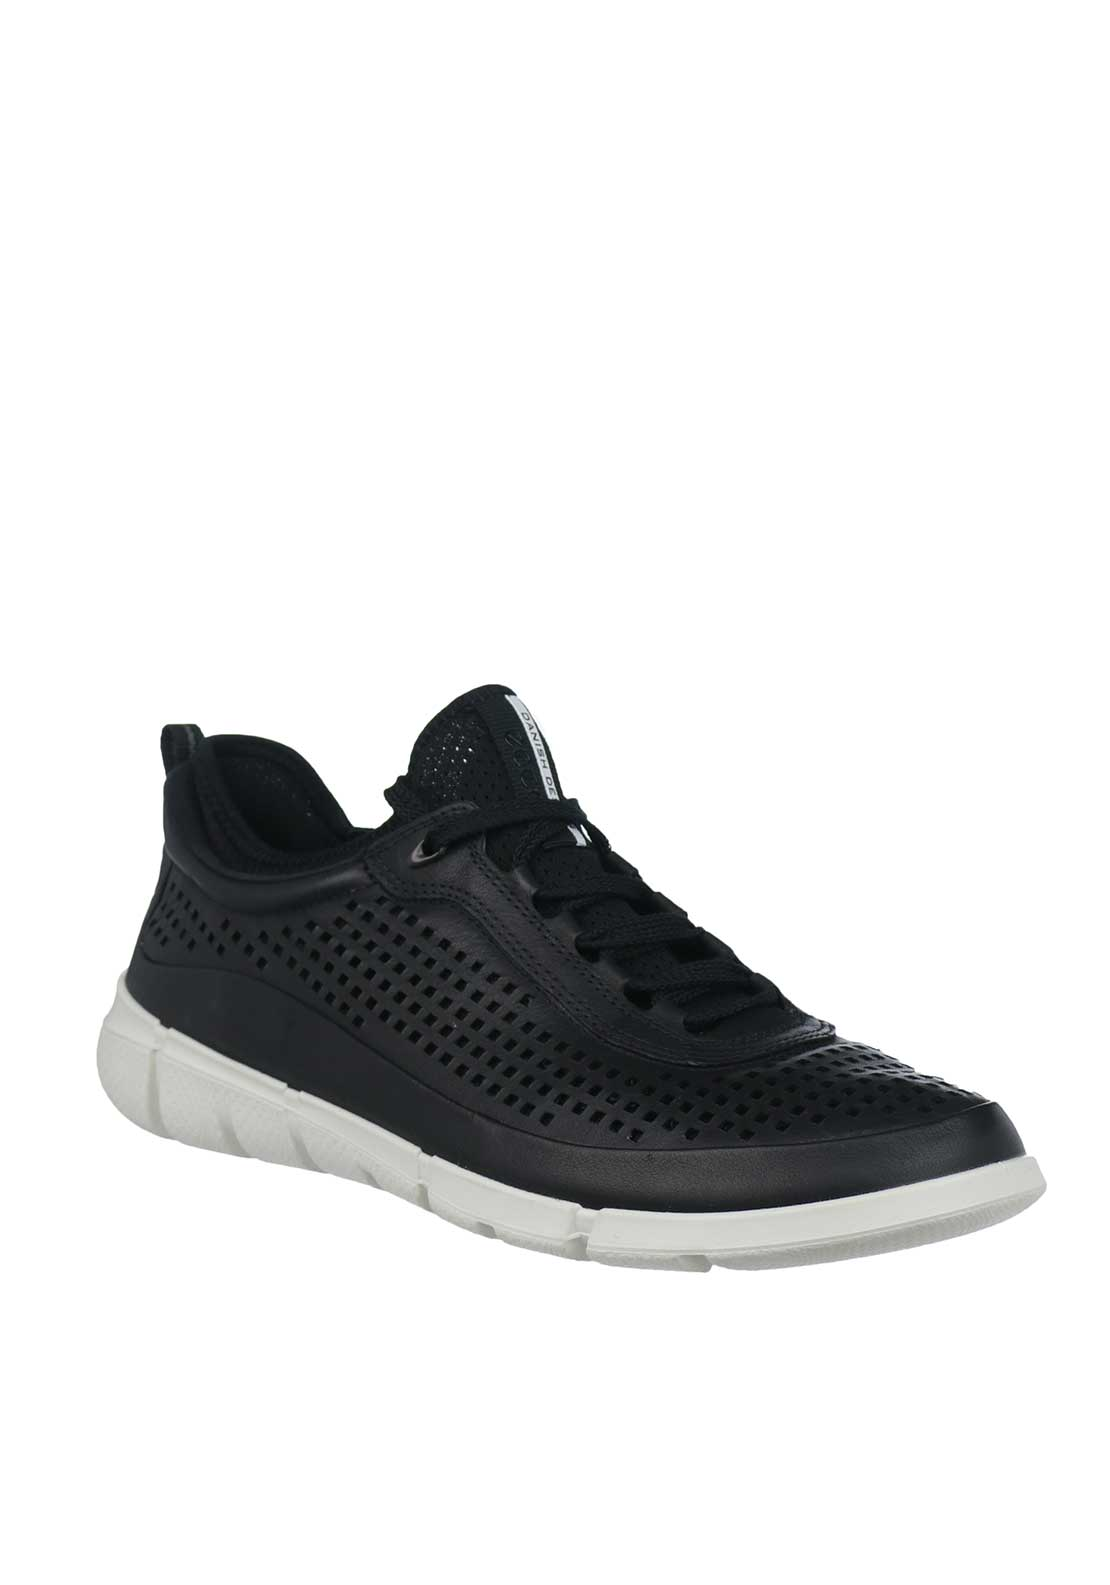 Ecco Mens Intrinsic Leather Trainers, Black